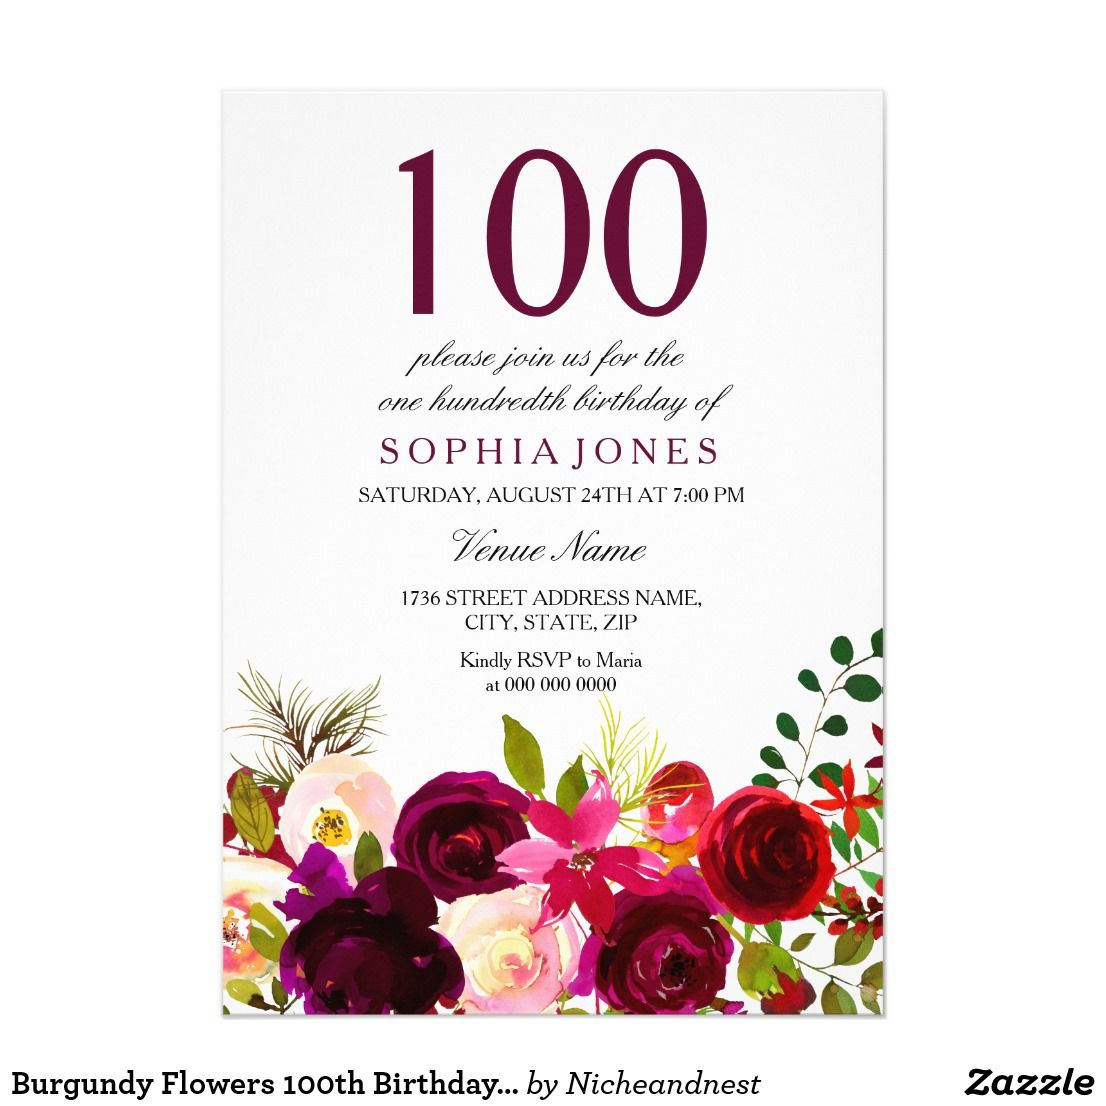 Burgundy flowers 100th birthday party invitation party invitations burgundy flowers 100th birthday party invitation filmwisefo